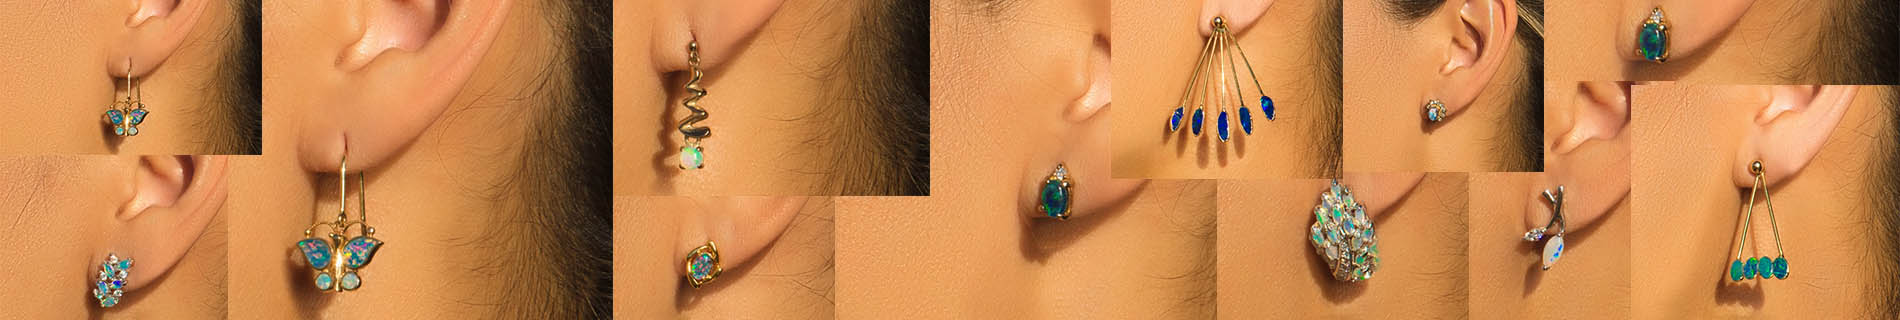 afinal-category-earrings.jpg